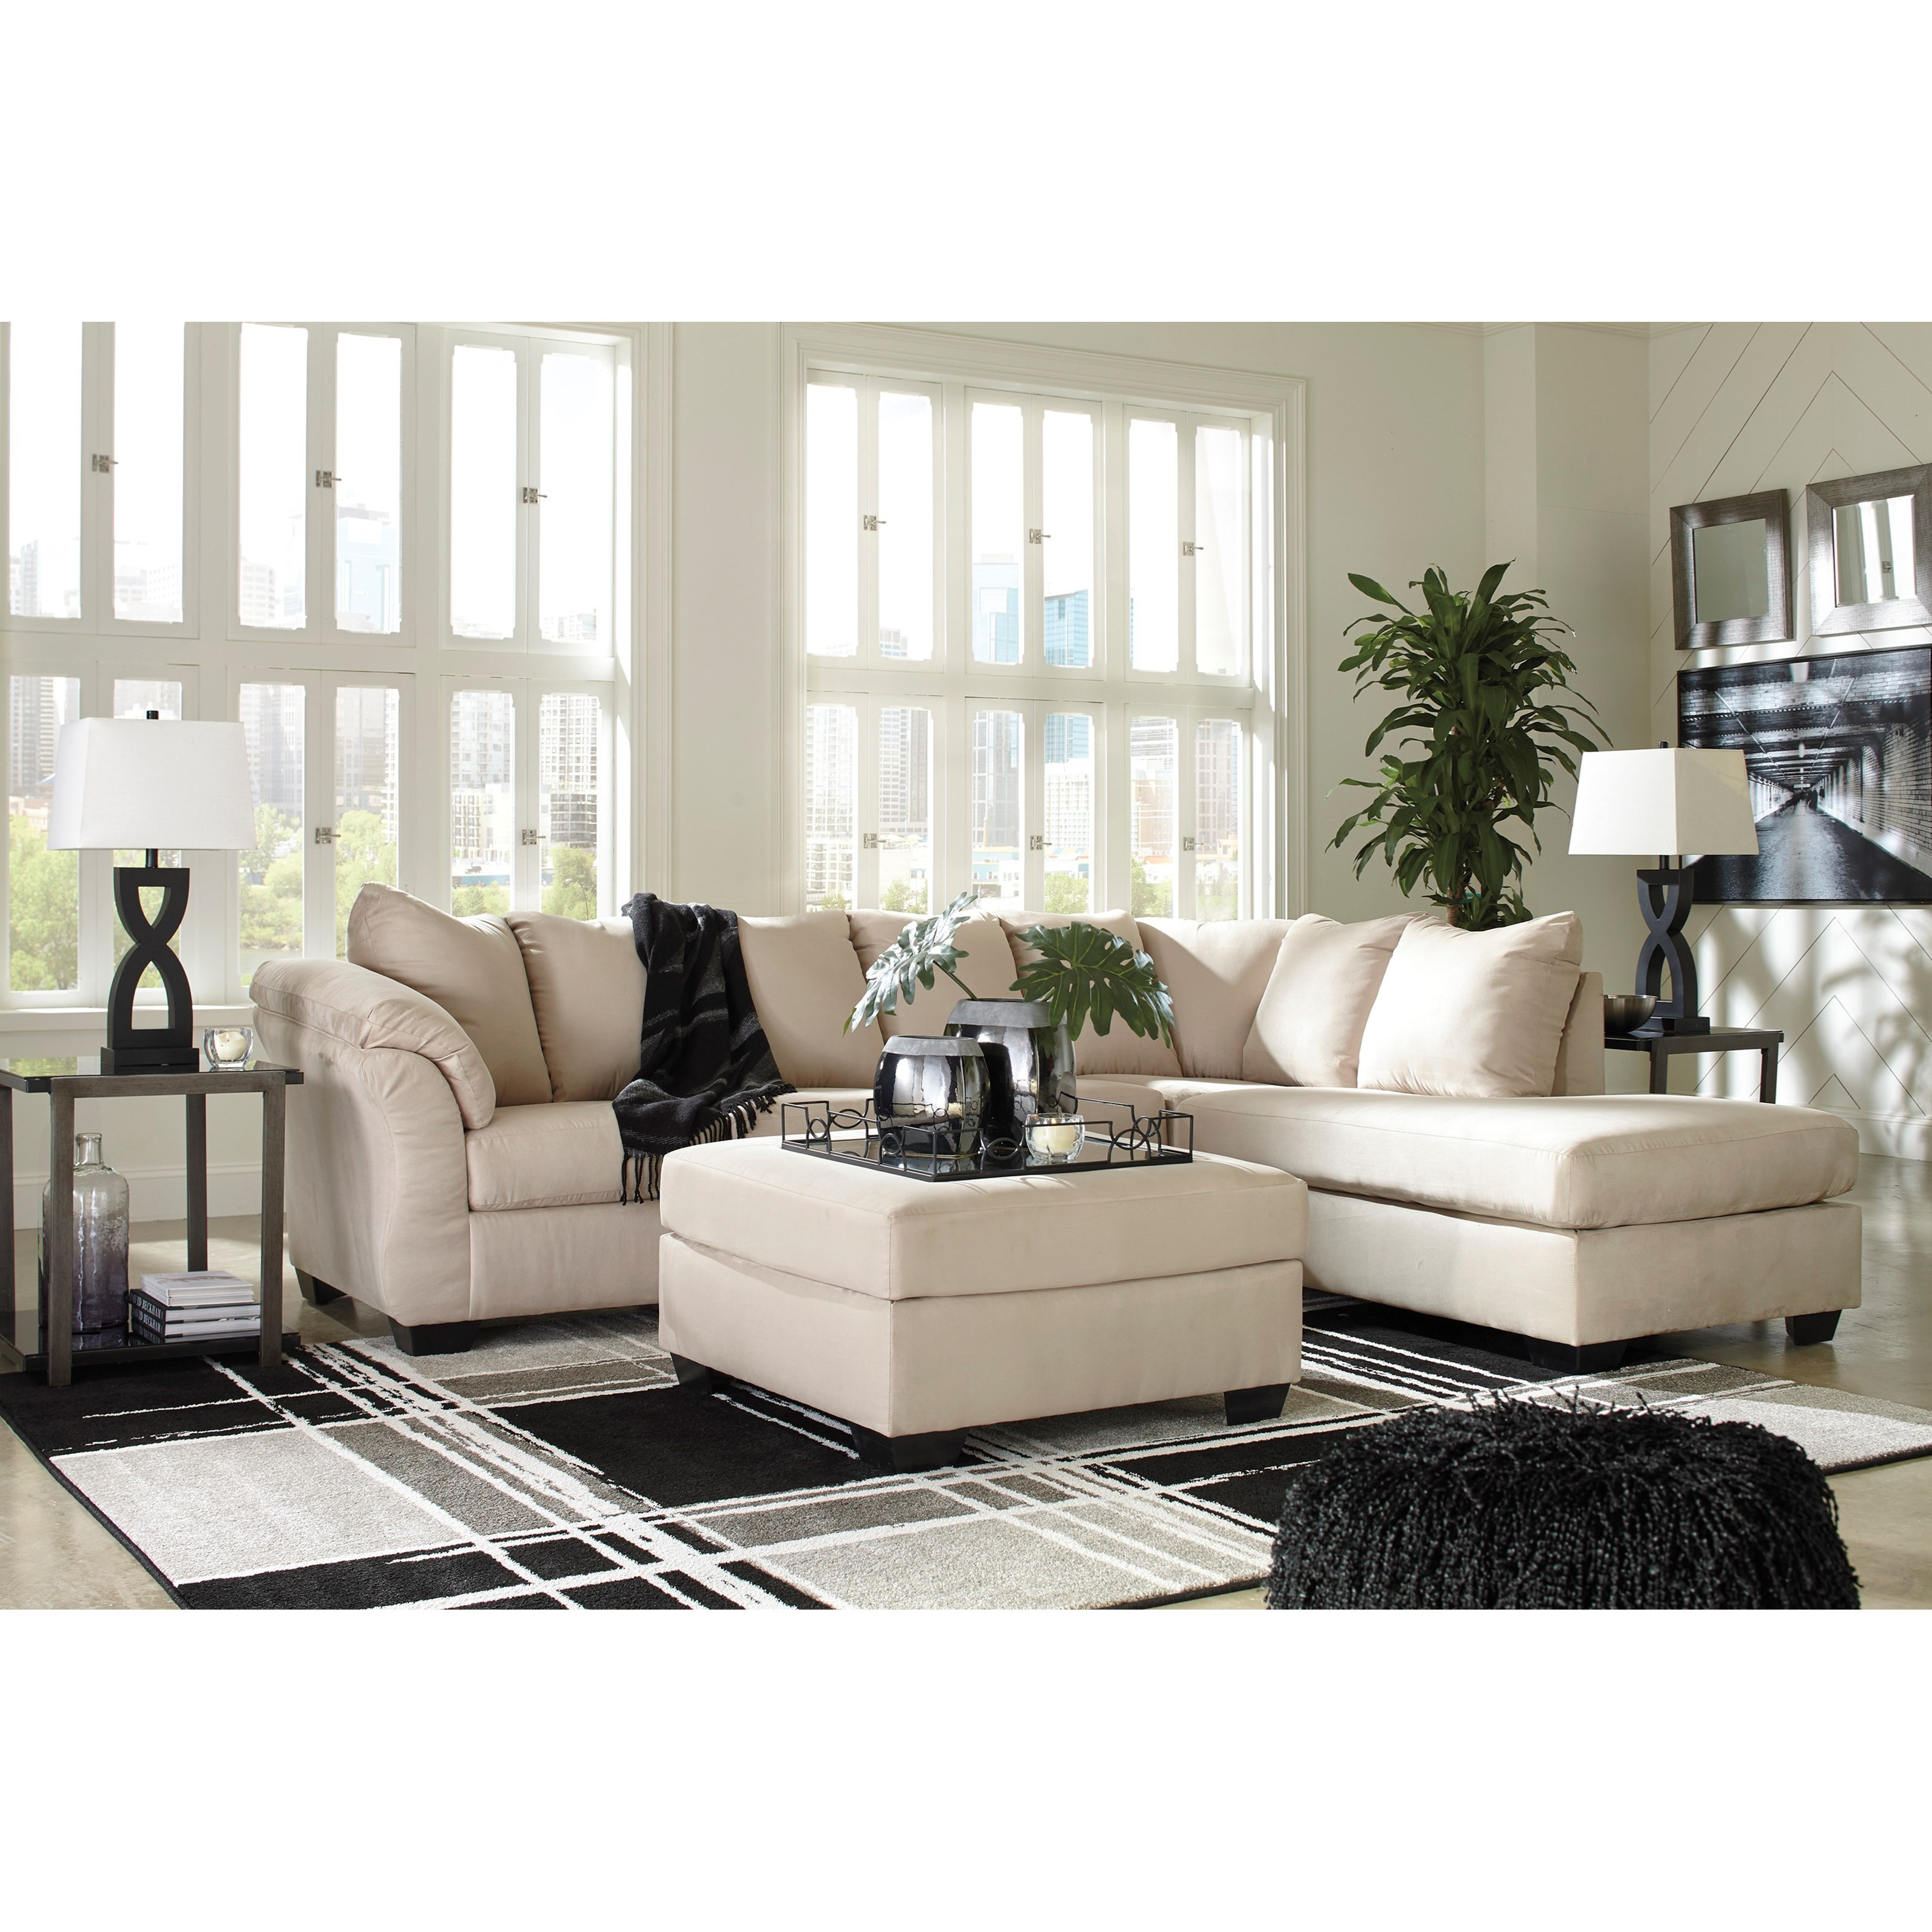 Darcy - Stone Stationary Living Room Group by Signature Design by Ashley at Sparks HomeStore